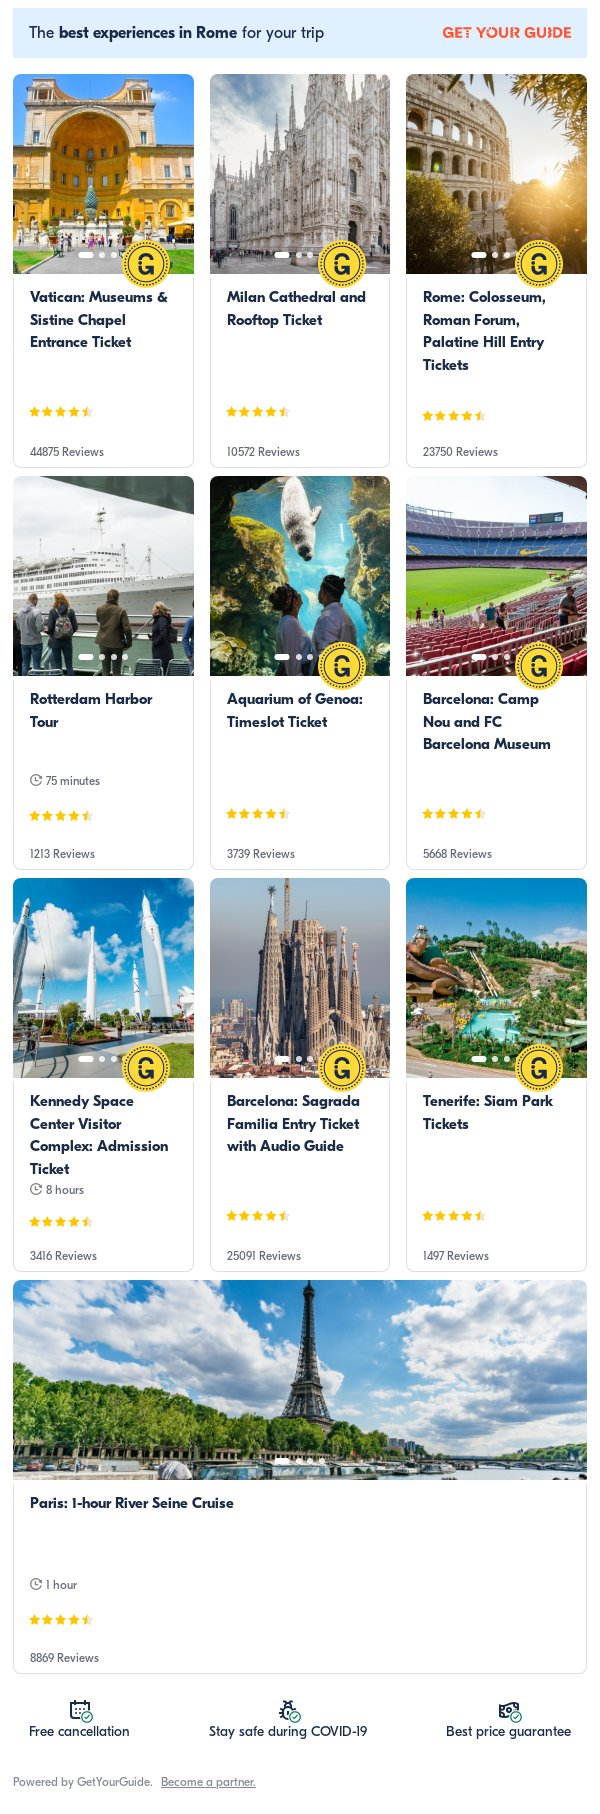 dubai: Get Your Guide